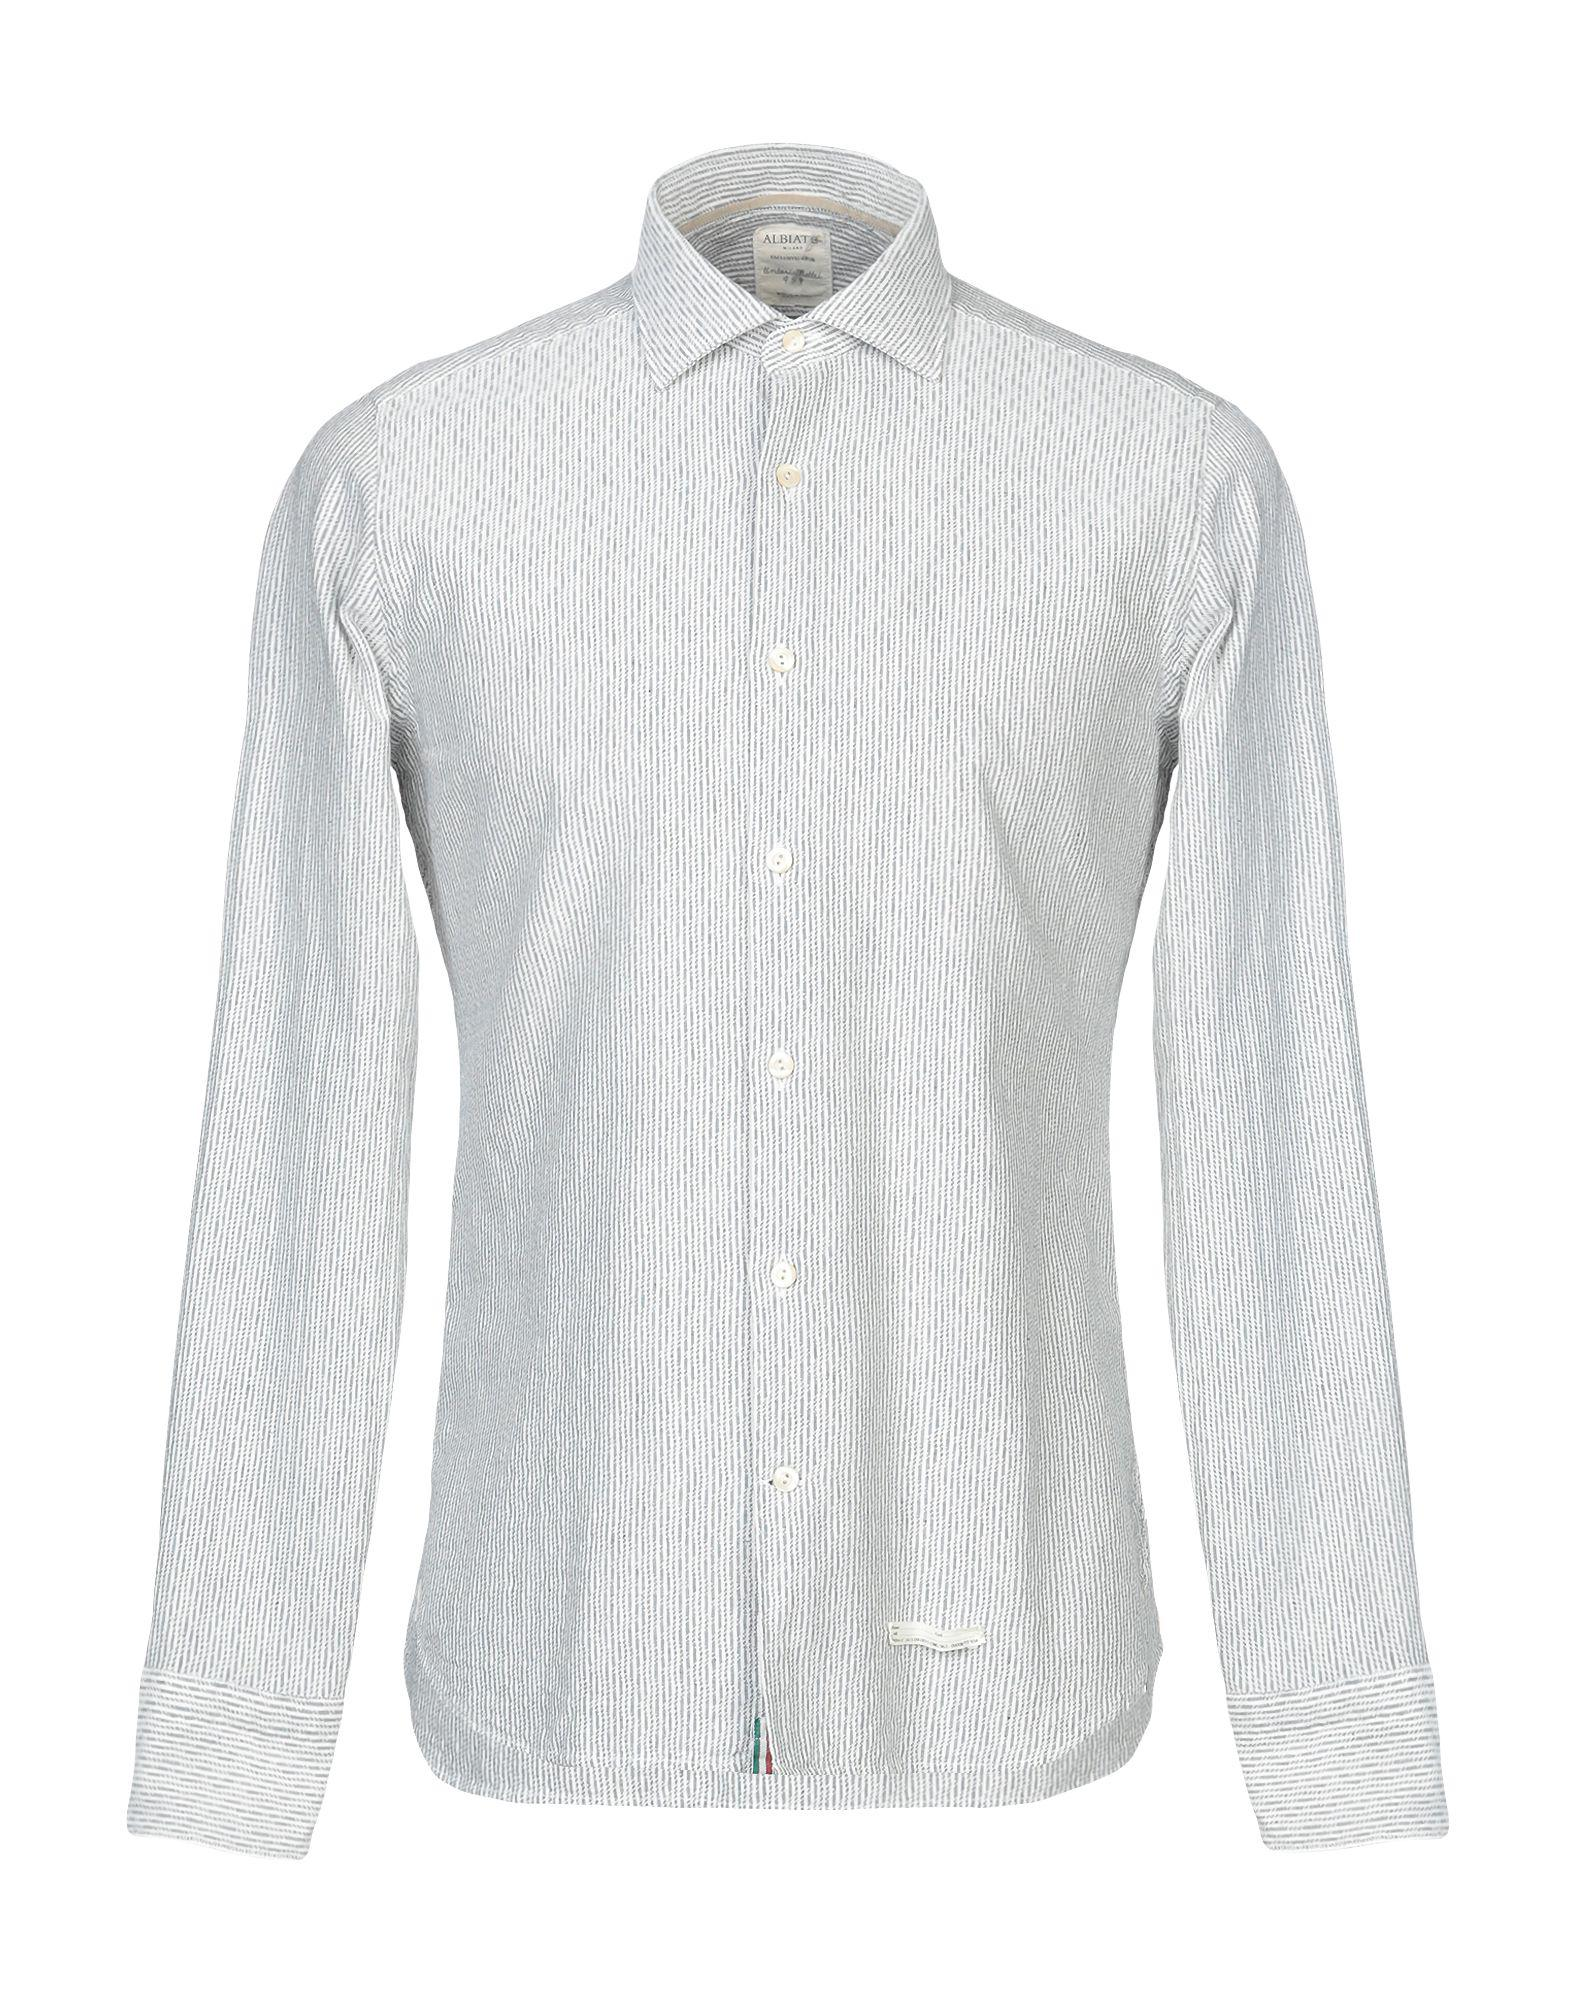 reputable site 90617 10e0e Tintoria Mattei 954 Shirt in White for Men - Lyst